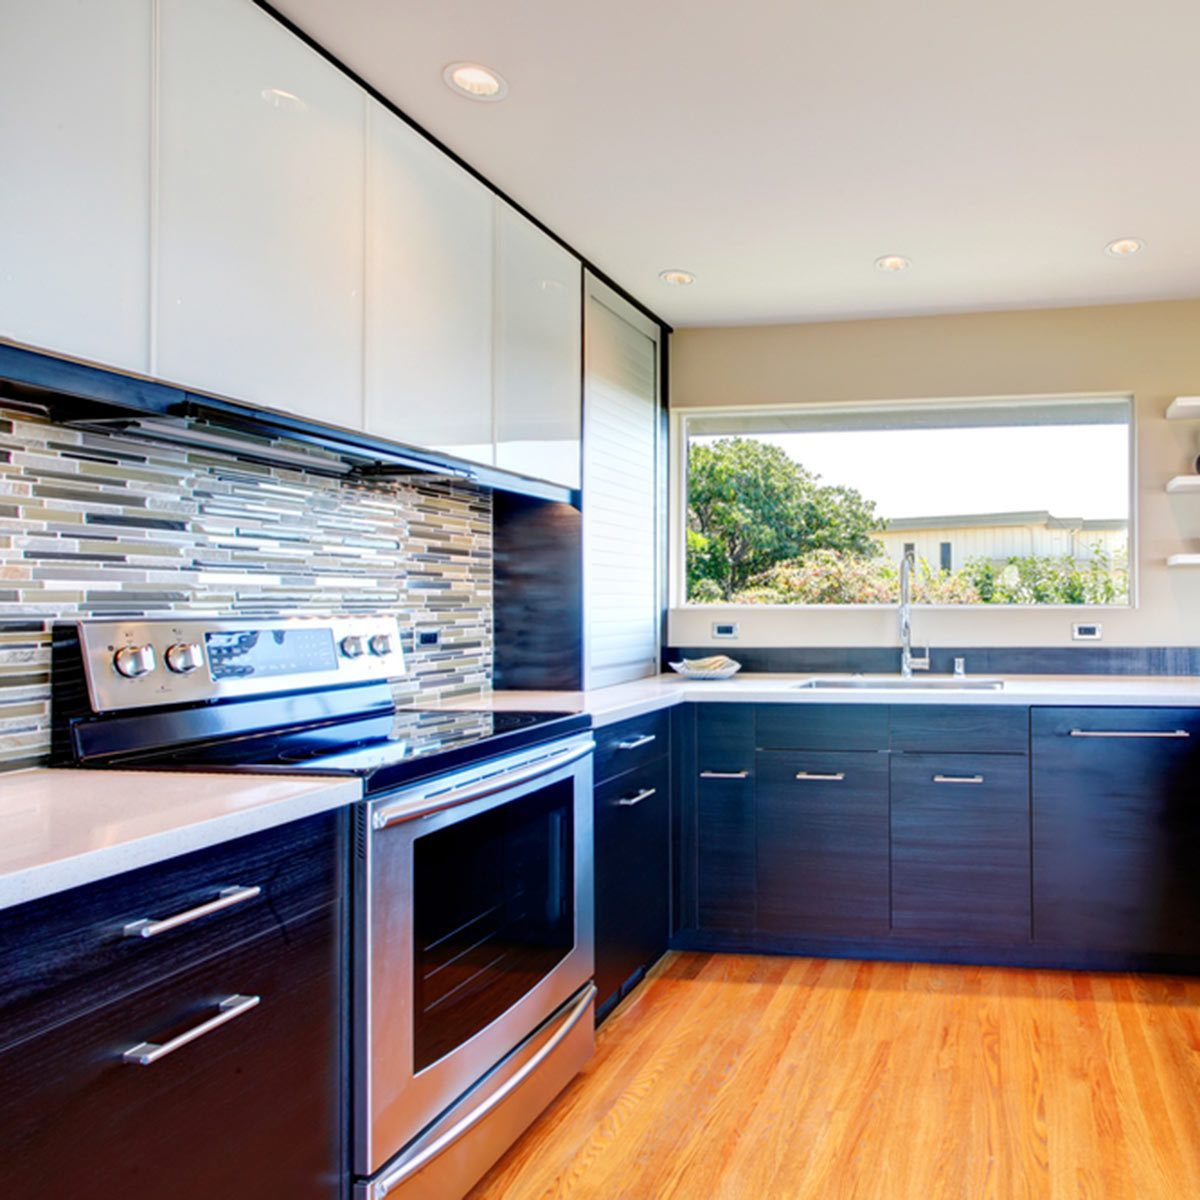 Kitchen Cabinet Remodel Ideas: Two-Toned Cabinets